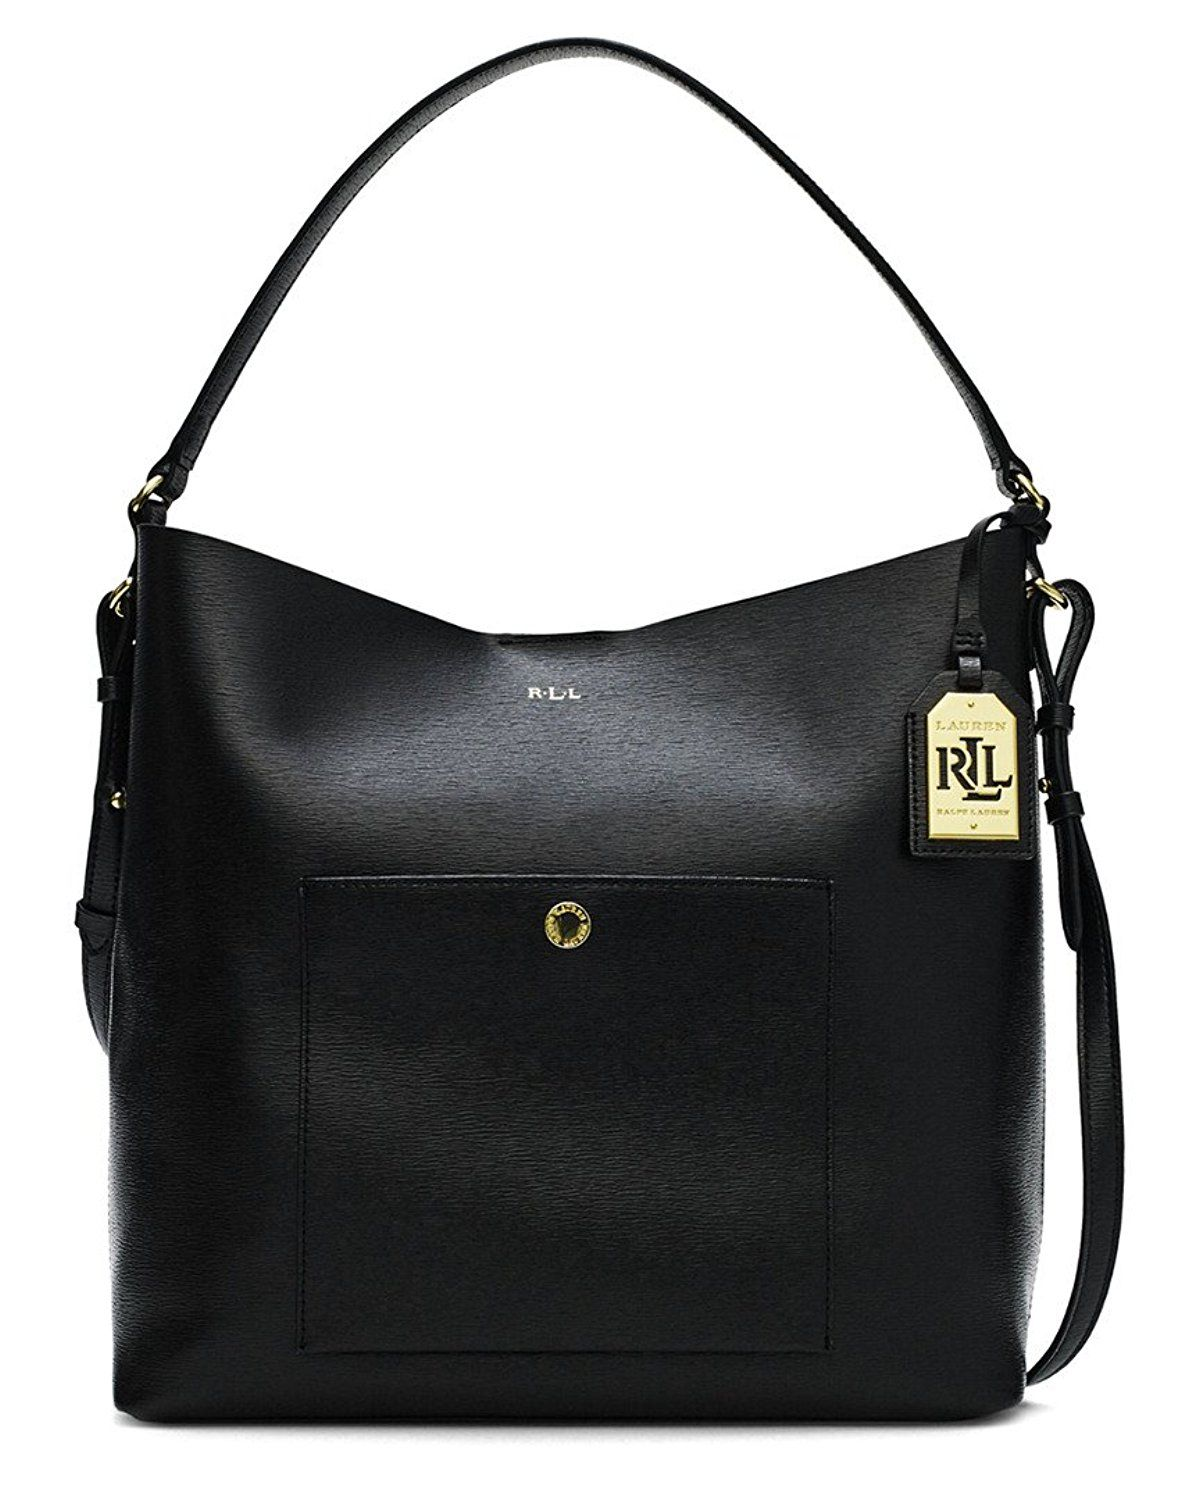 c553b3d8a7eab2 Lauren Ralph Lauren Newbury Pocket Leather Hobo Bag >>> Check out this great  product.